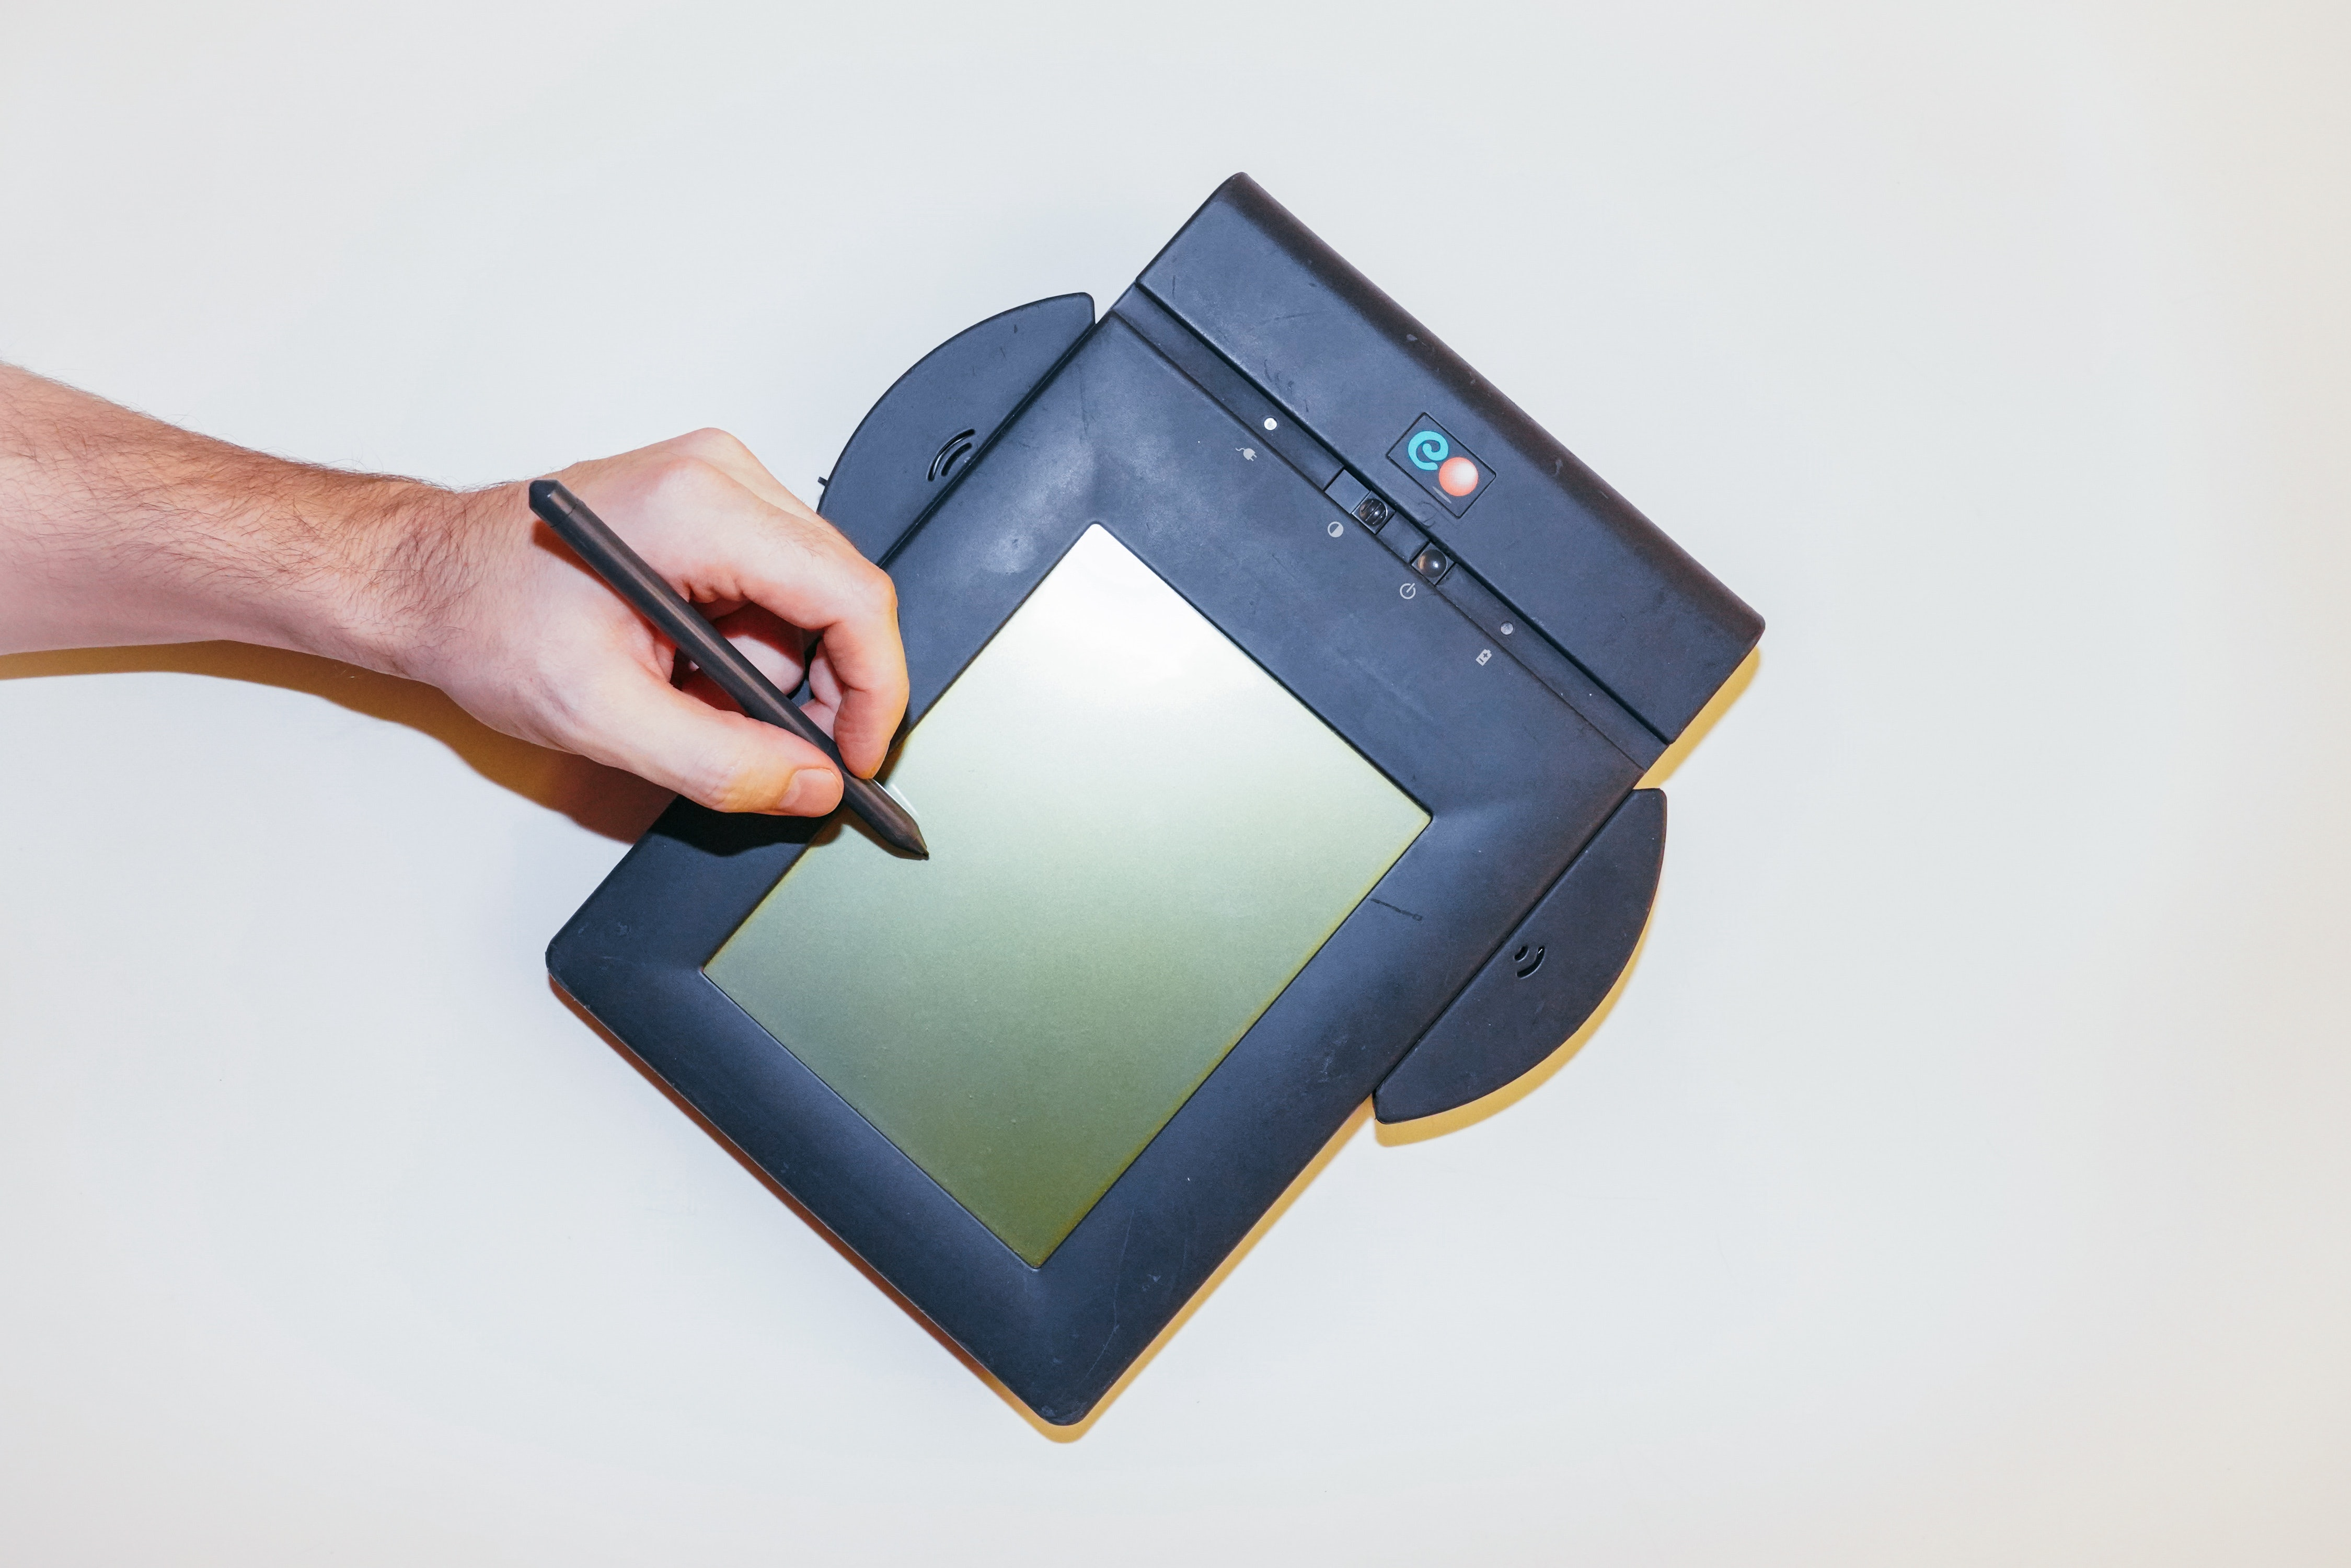 Fax on the beach: The story of the audacious, totally calamitous iPad of the '90s